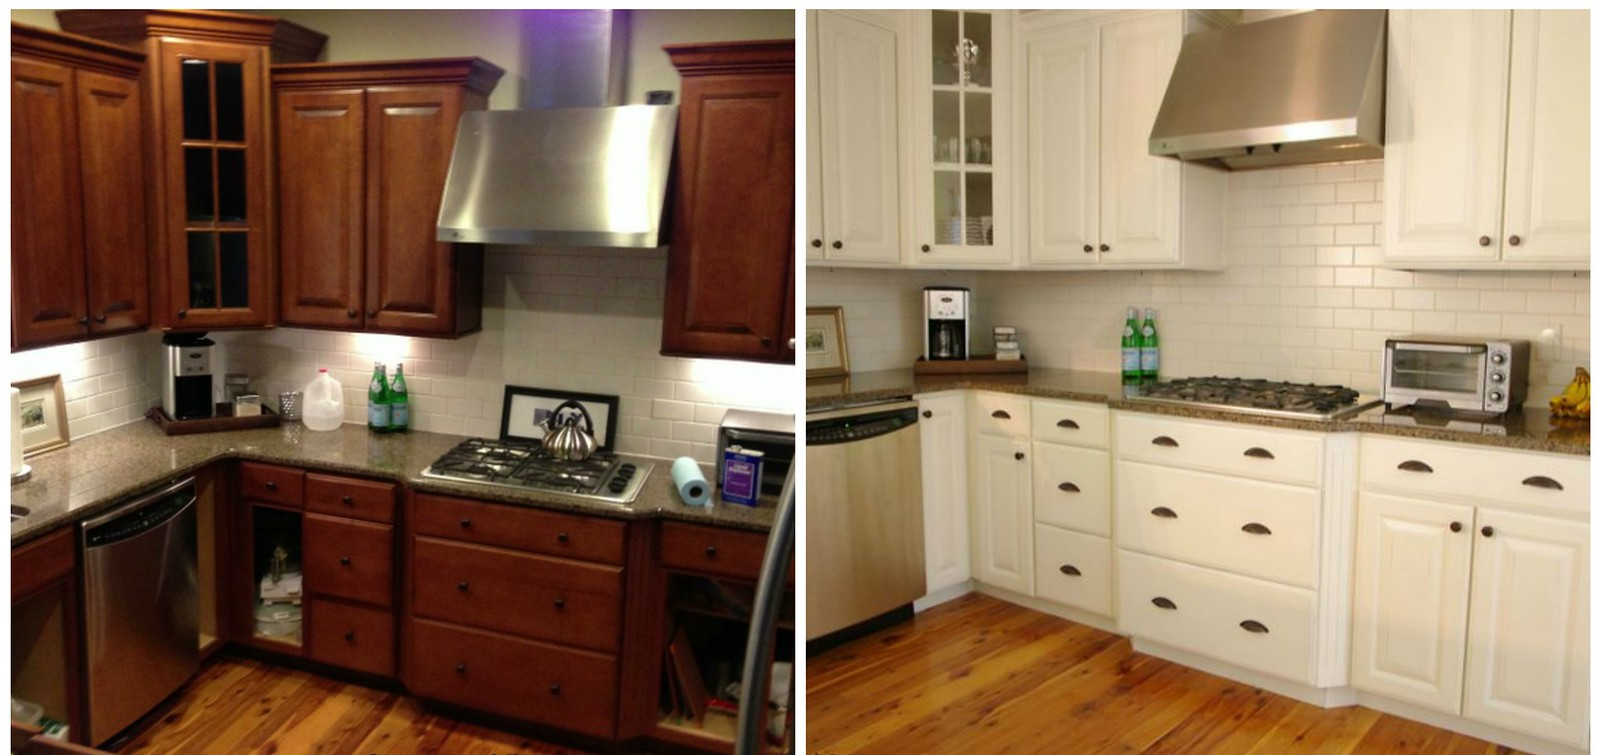 Refinish Paint Kitchen Cabinets Before After Llsheilall